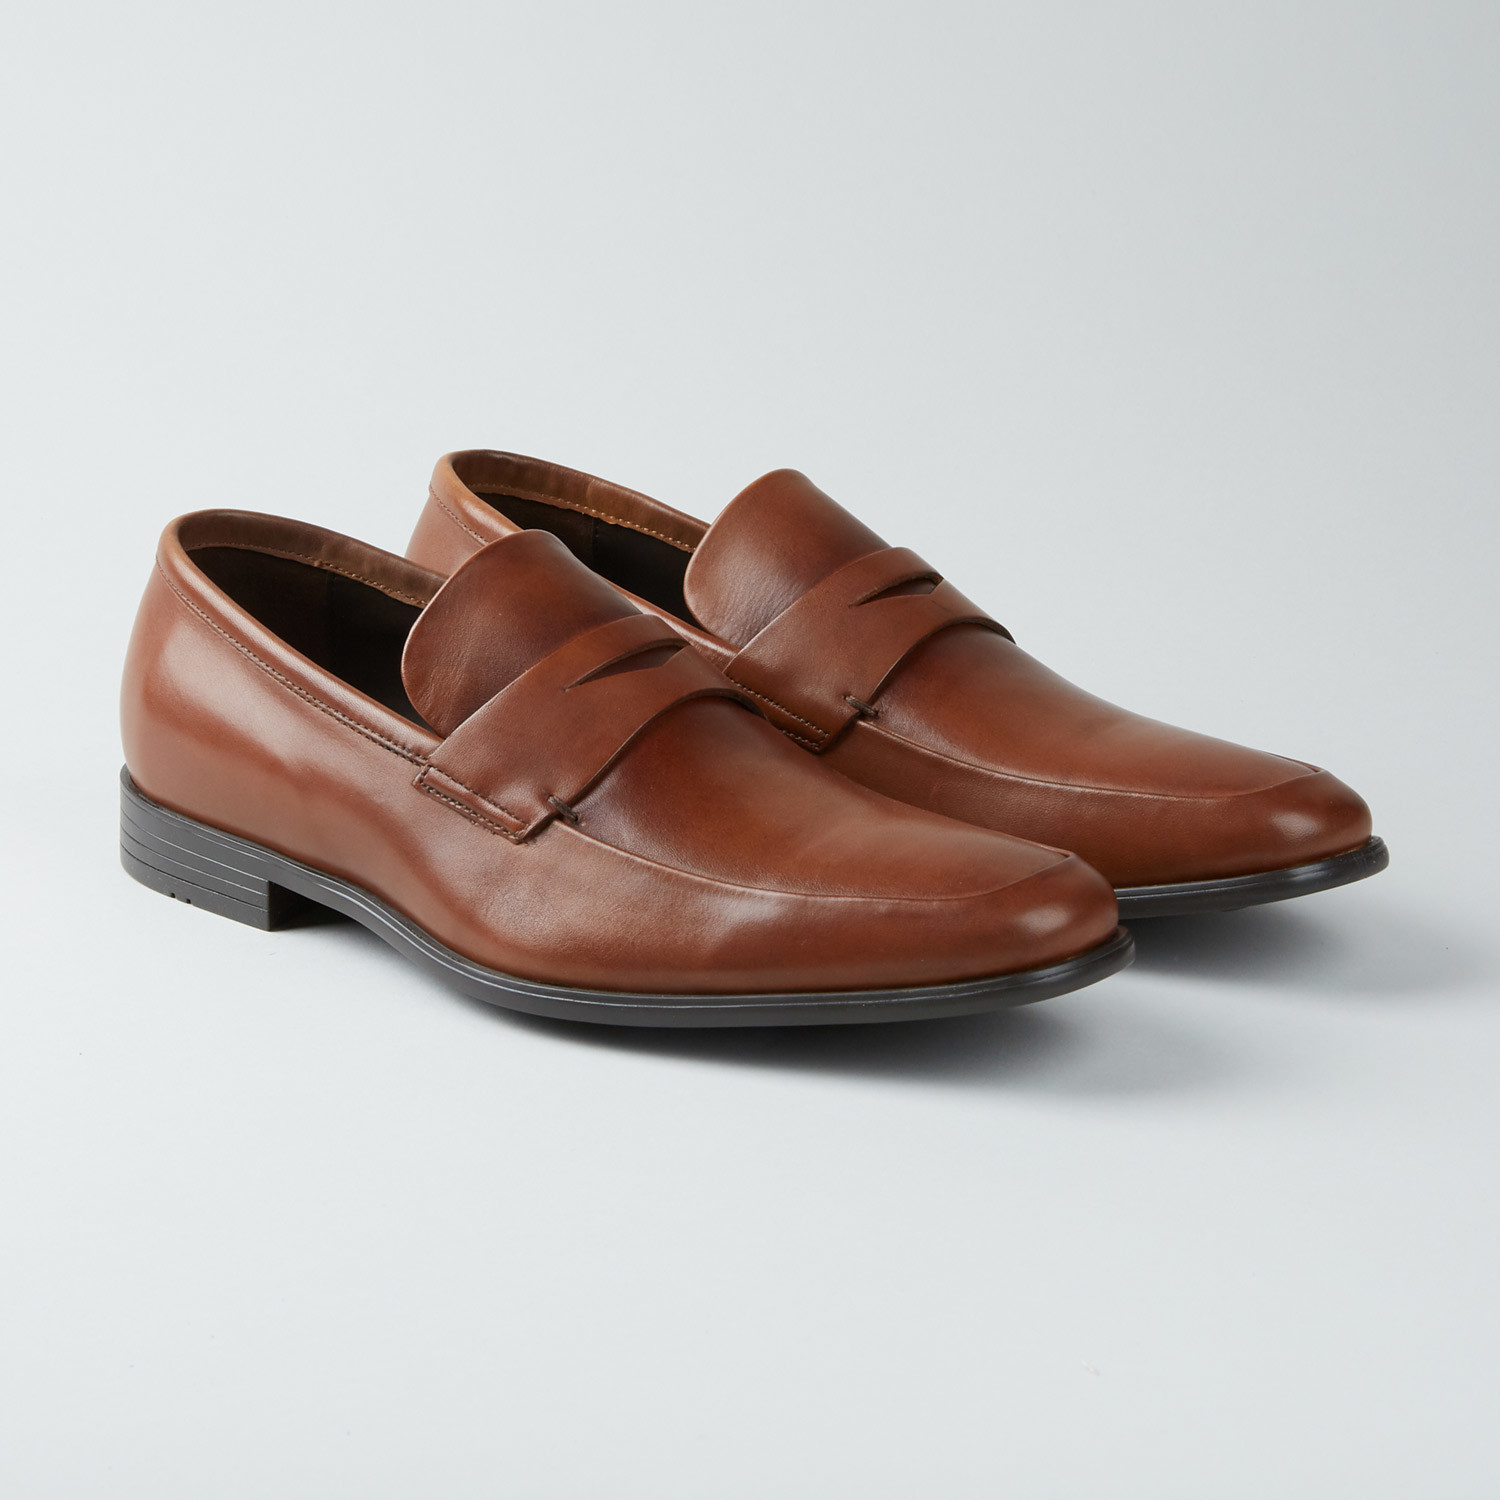 6e19dd7df2b Smith Penny Loafer    Cognac (US  9.5) - Rush By Gordon Rush - Touch ...